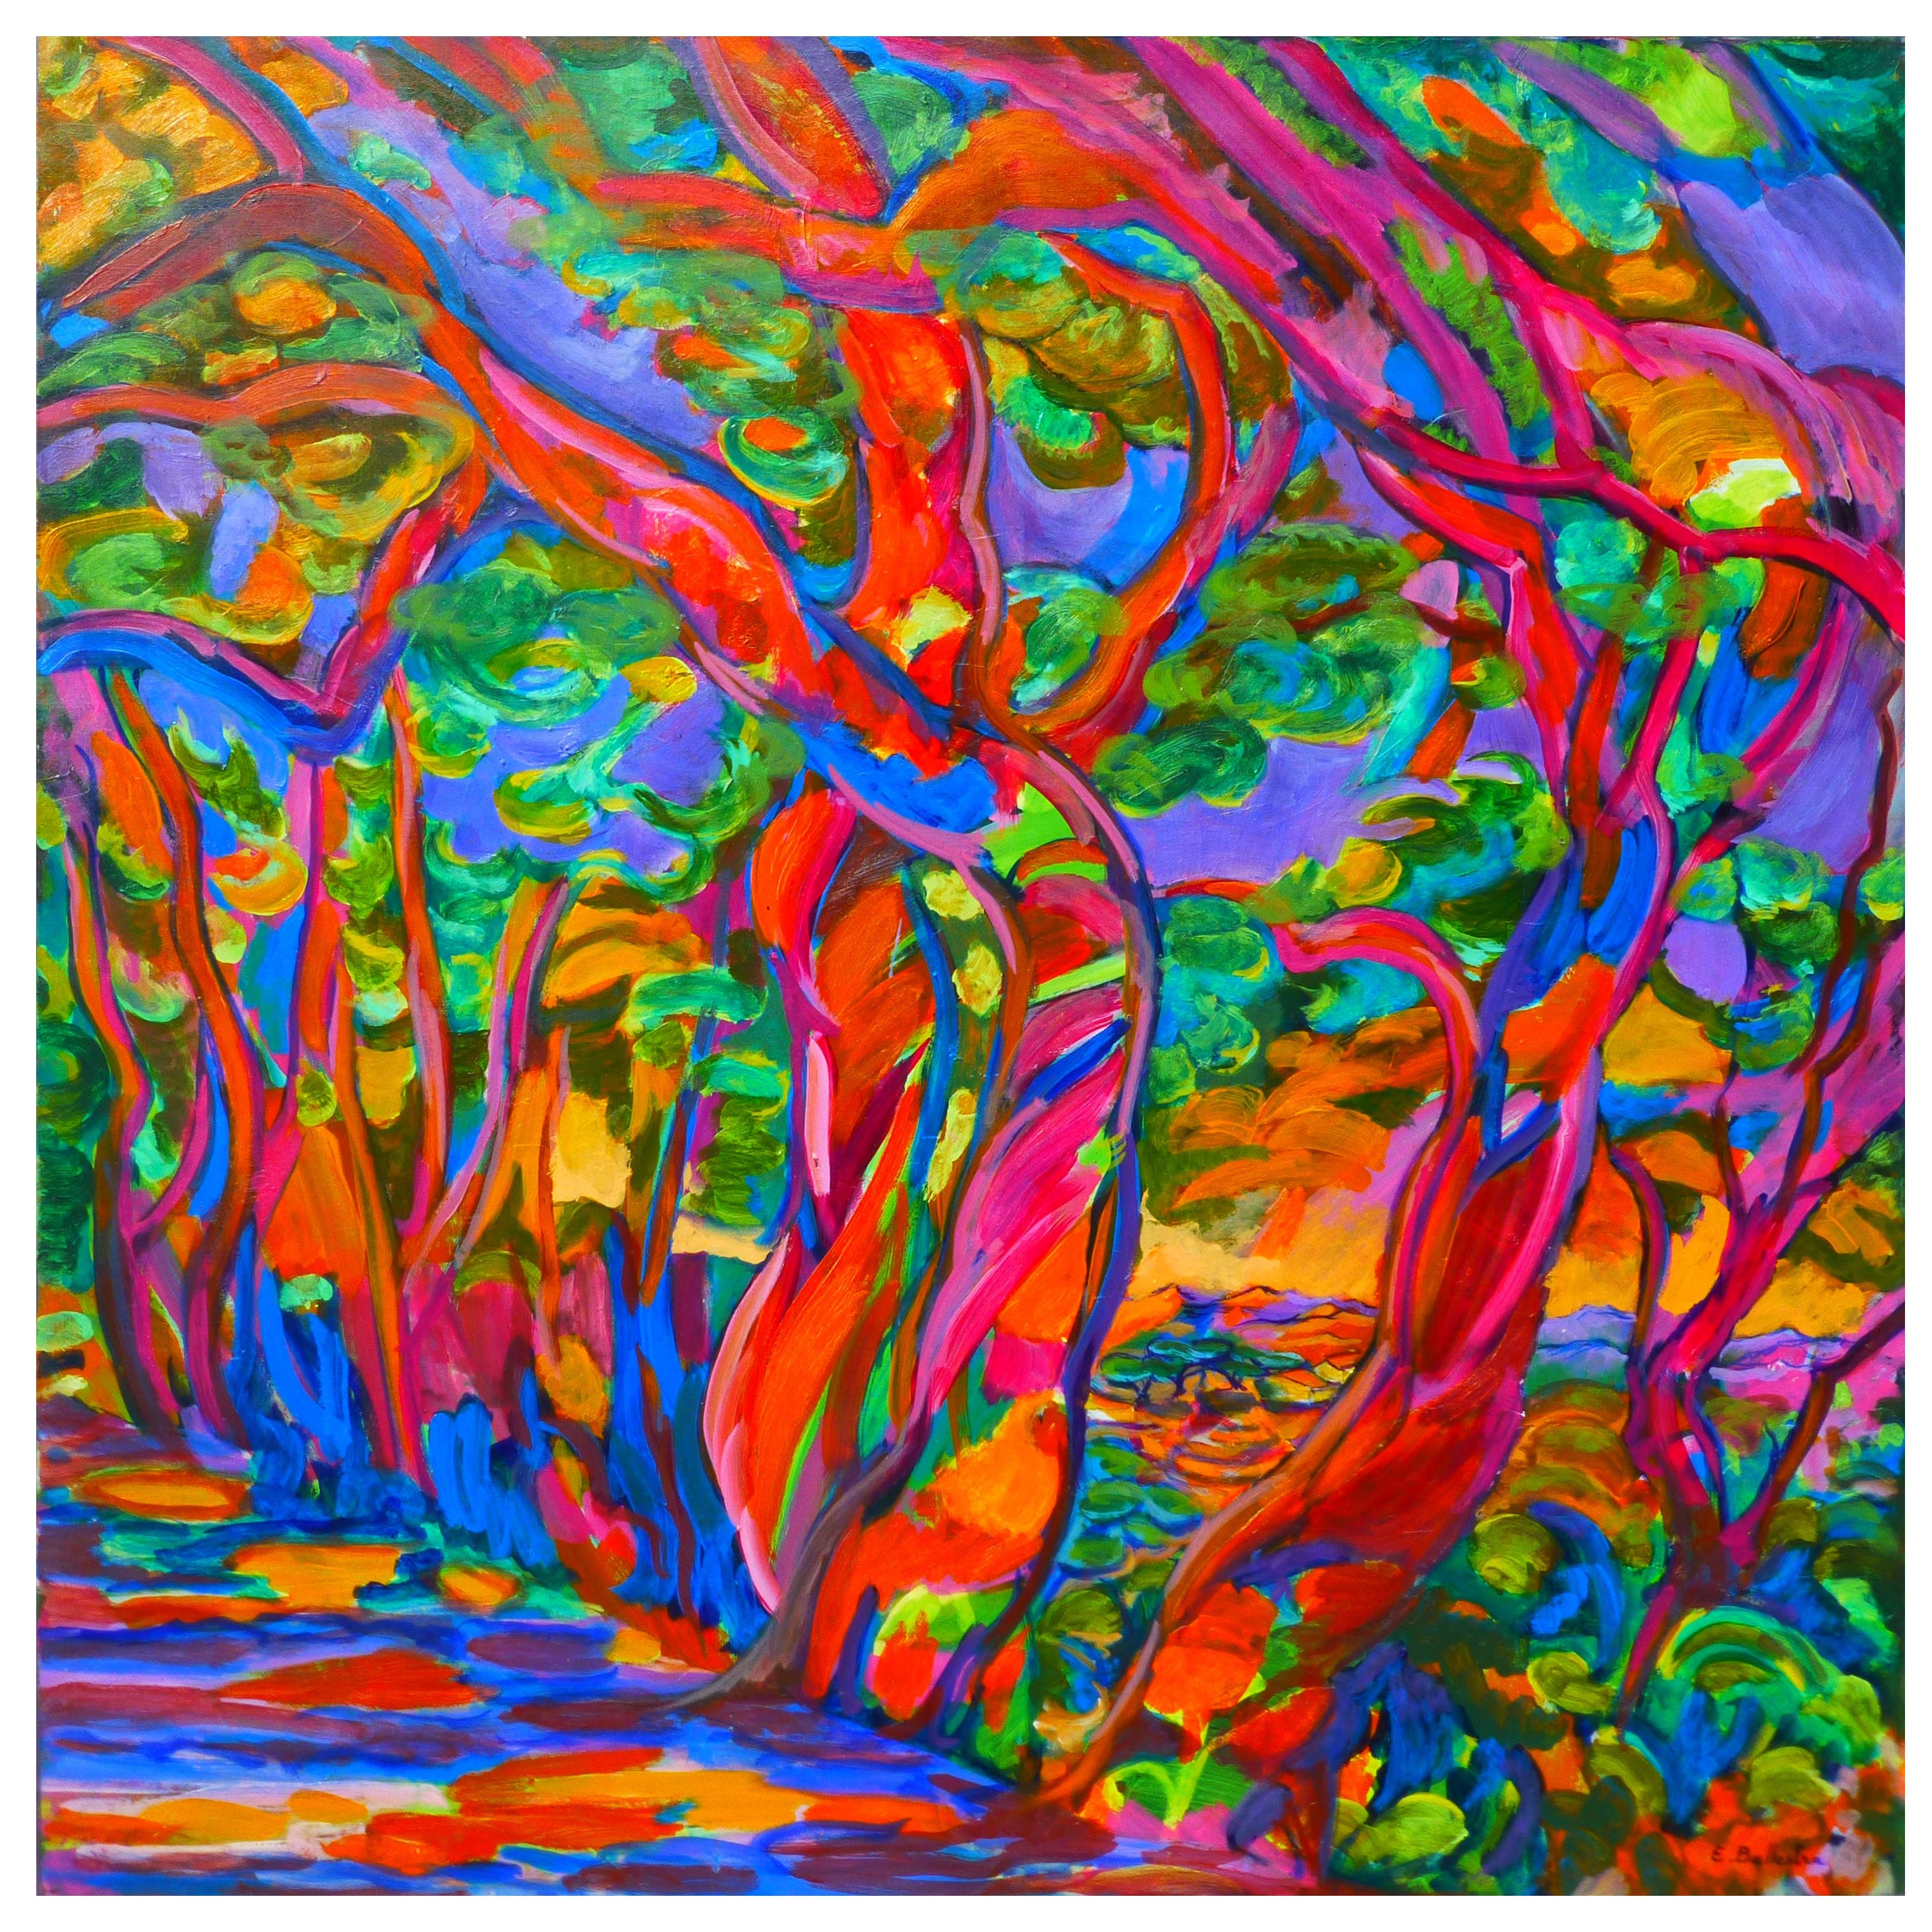 Expressionist Landscape   Oil Painting by Ballestra